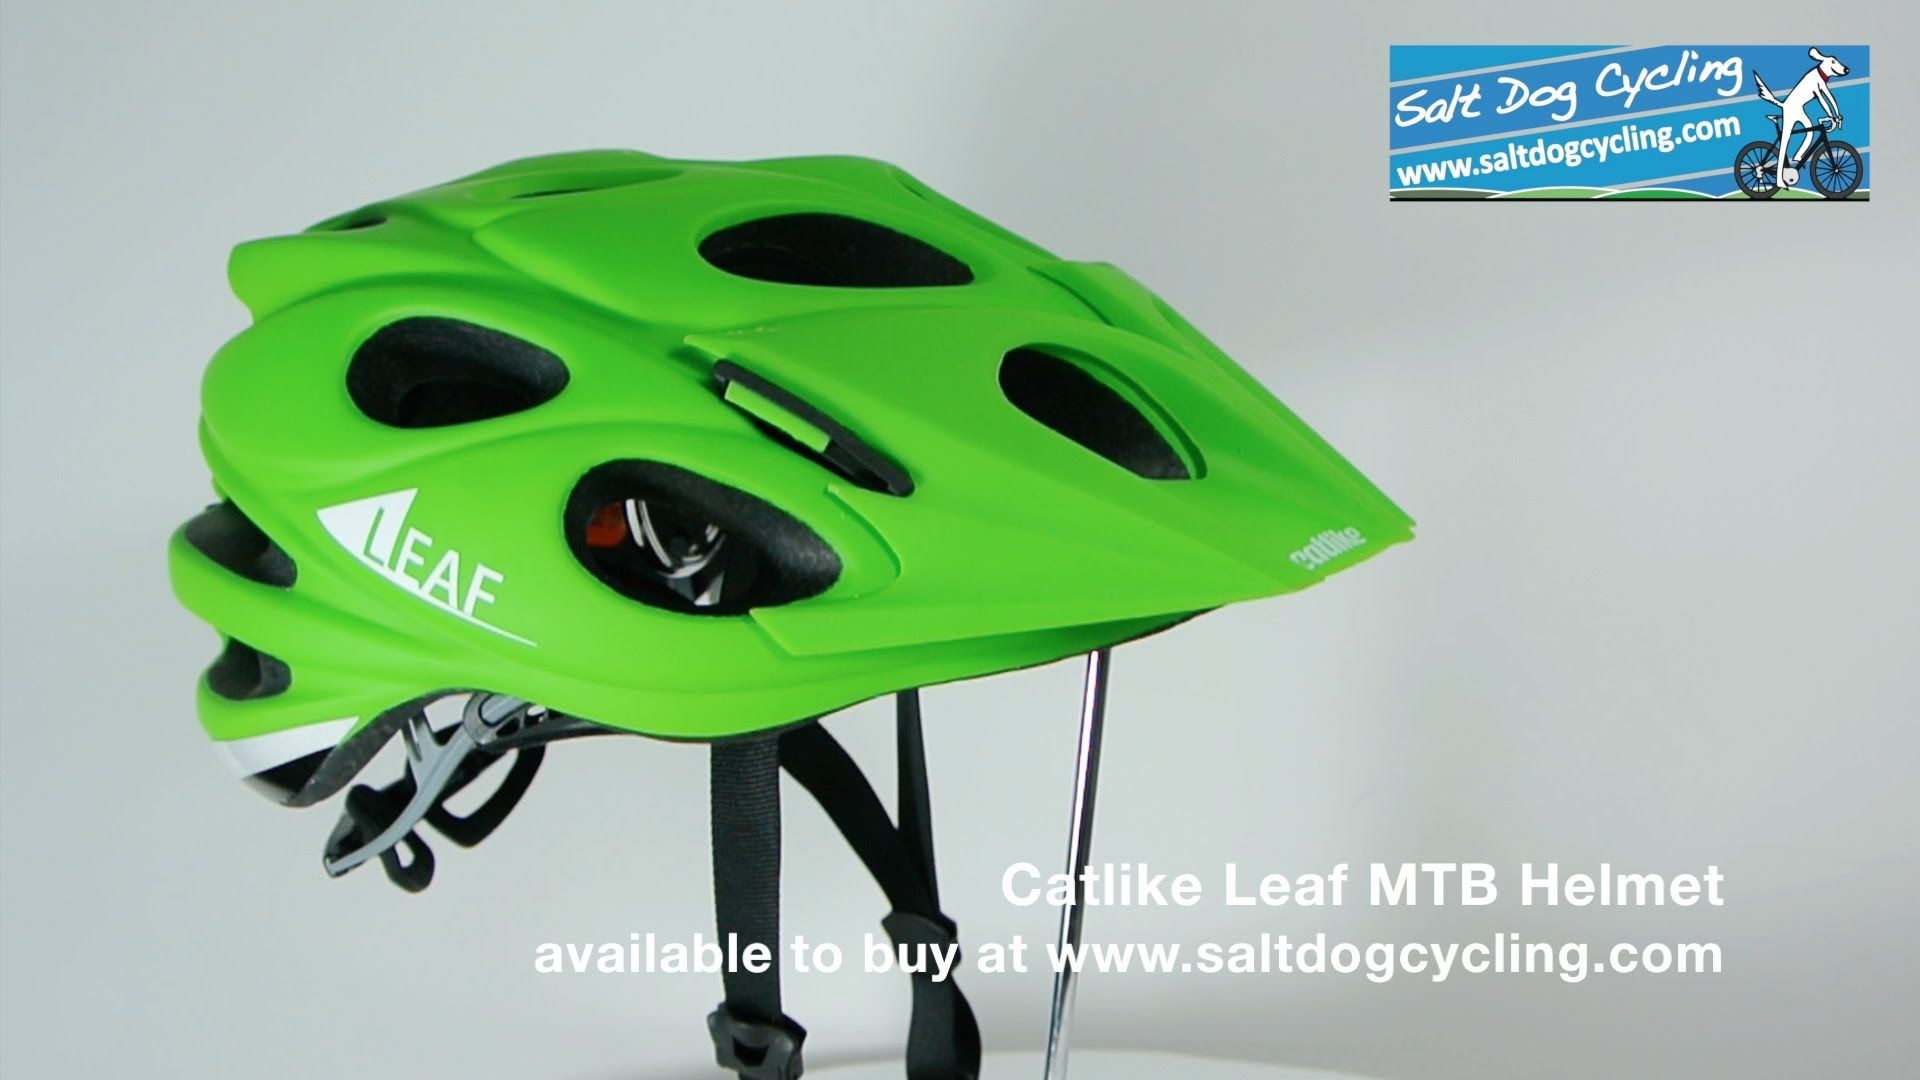 The Catlike Leaf Mtb Helmet Available At Salt Dog Cycling Free Uk And European Delivery Http Www Saltdogcycling Com Brands Catlike Catlike Leaf Mtb Helmet